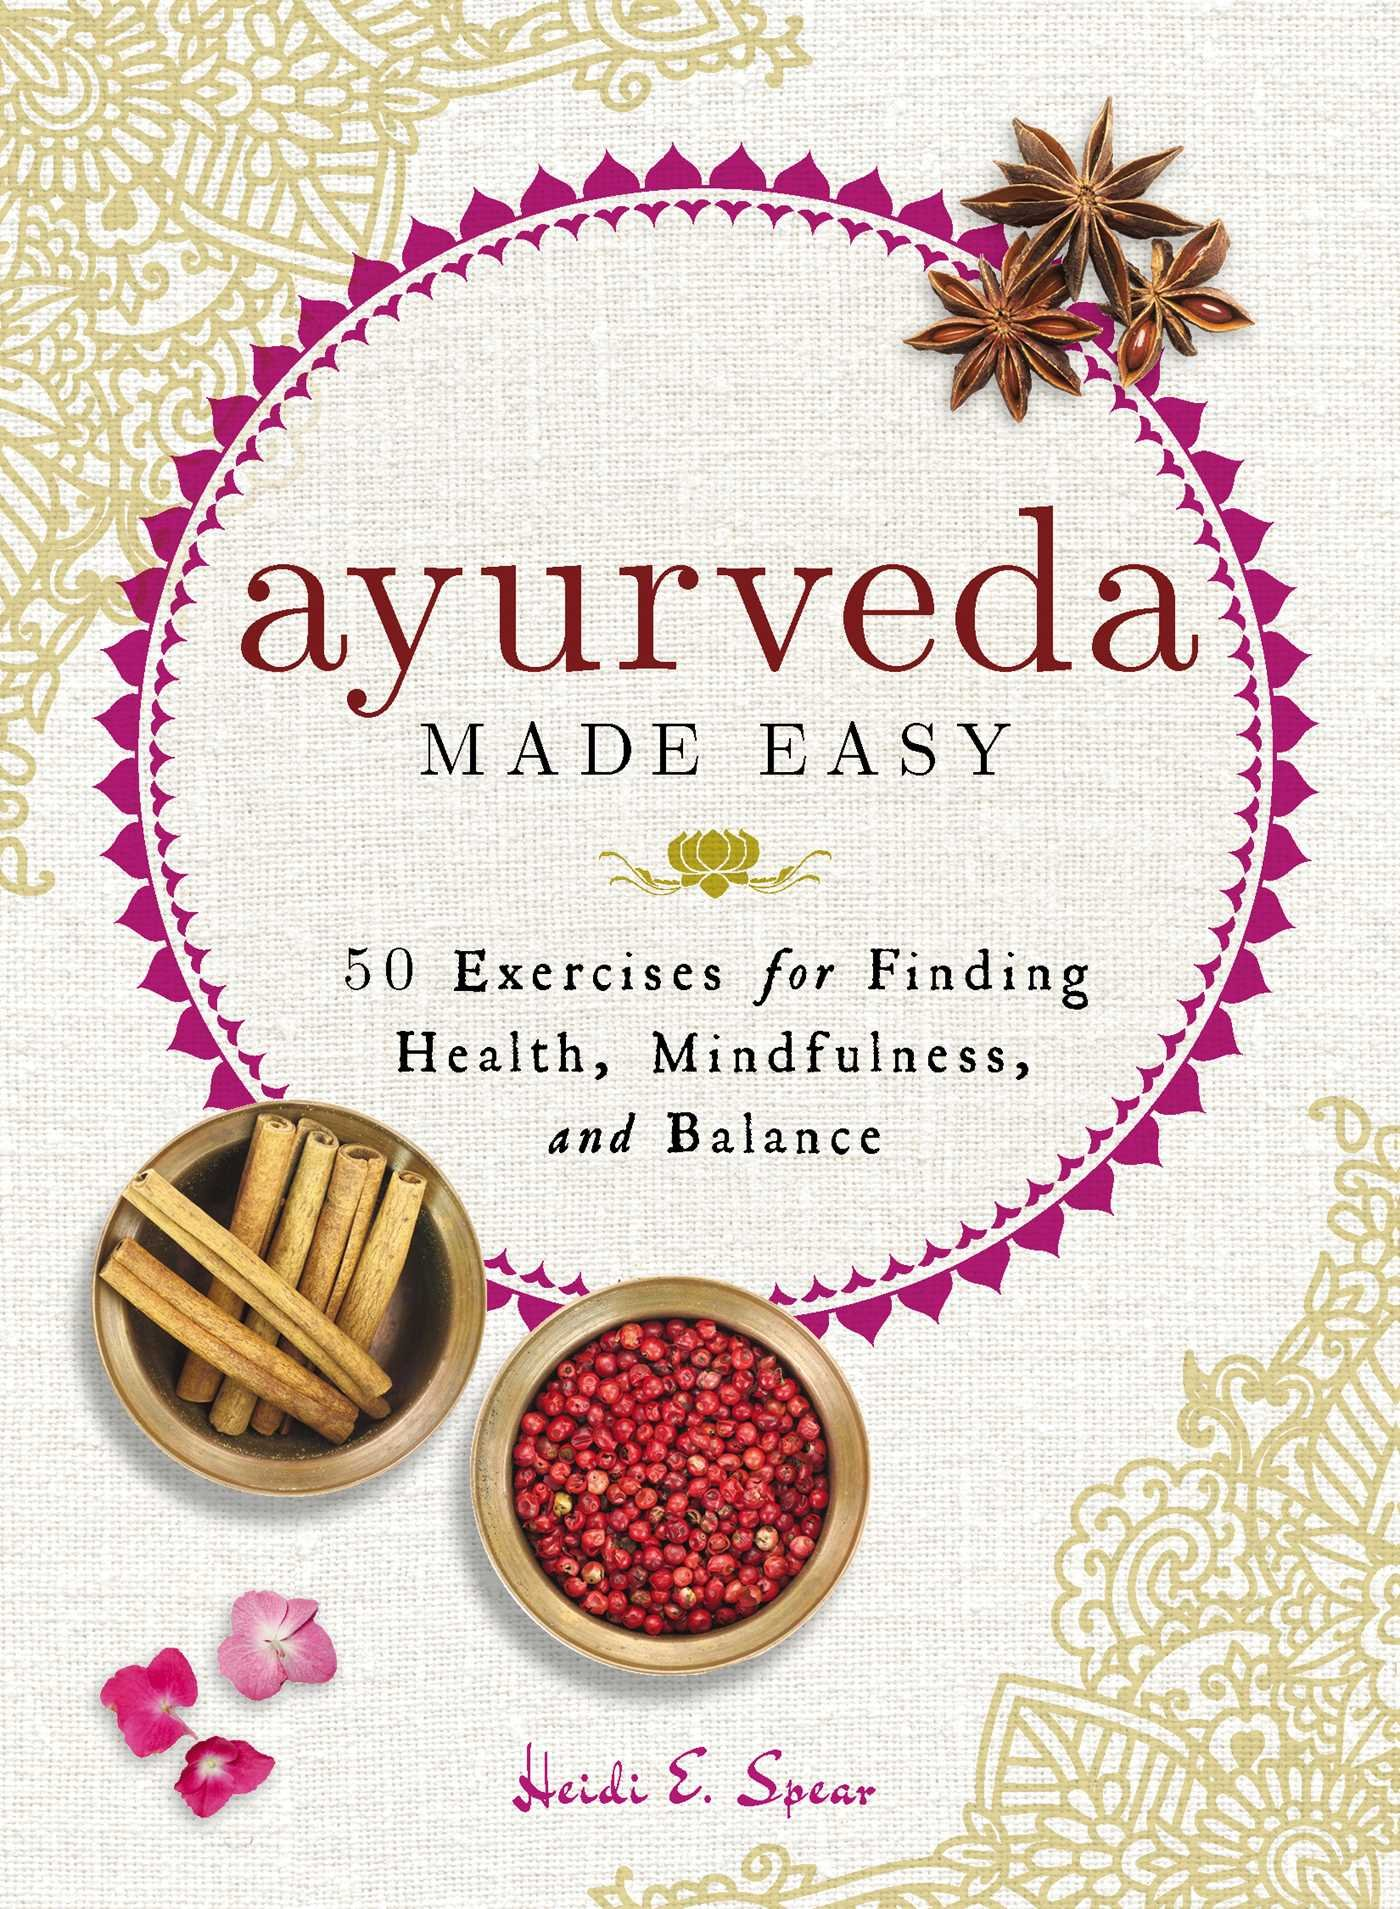 Ayurveday Made Easy.jpg